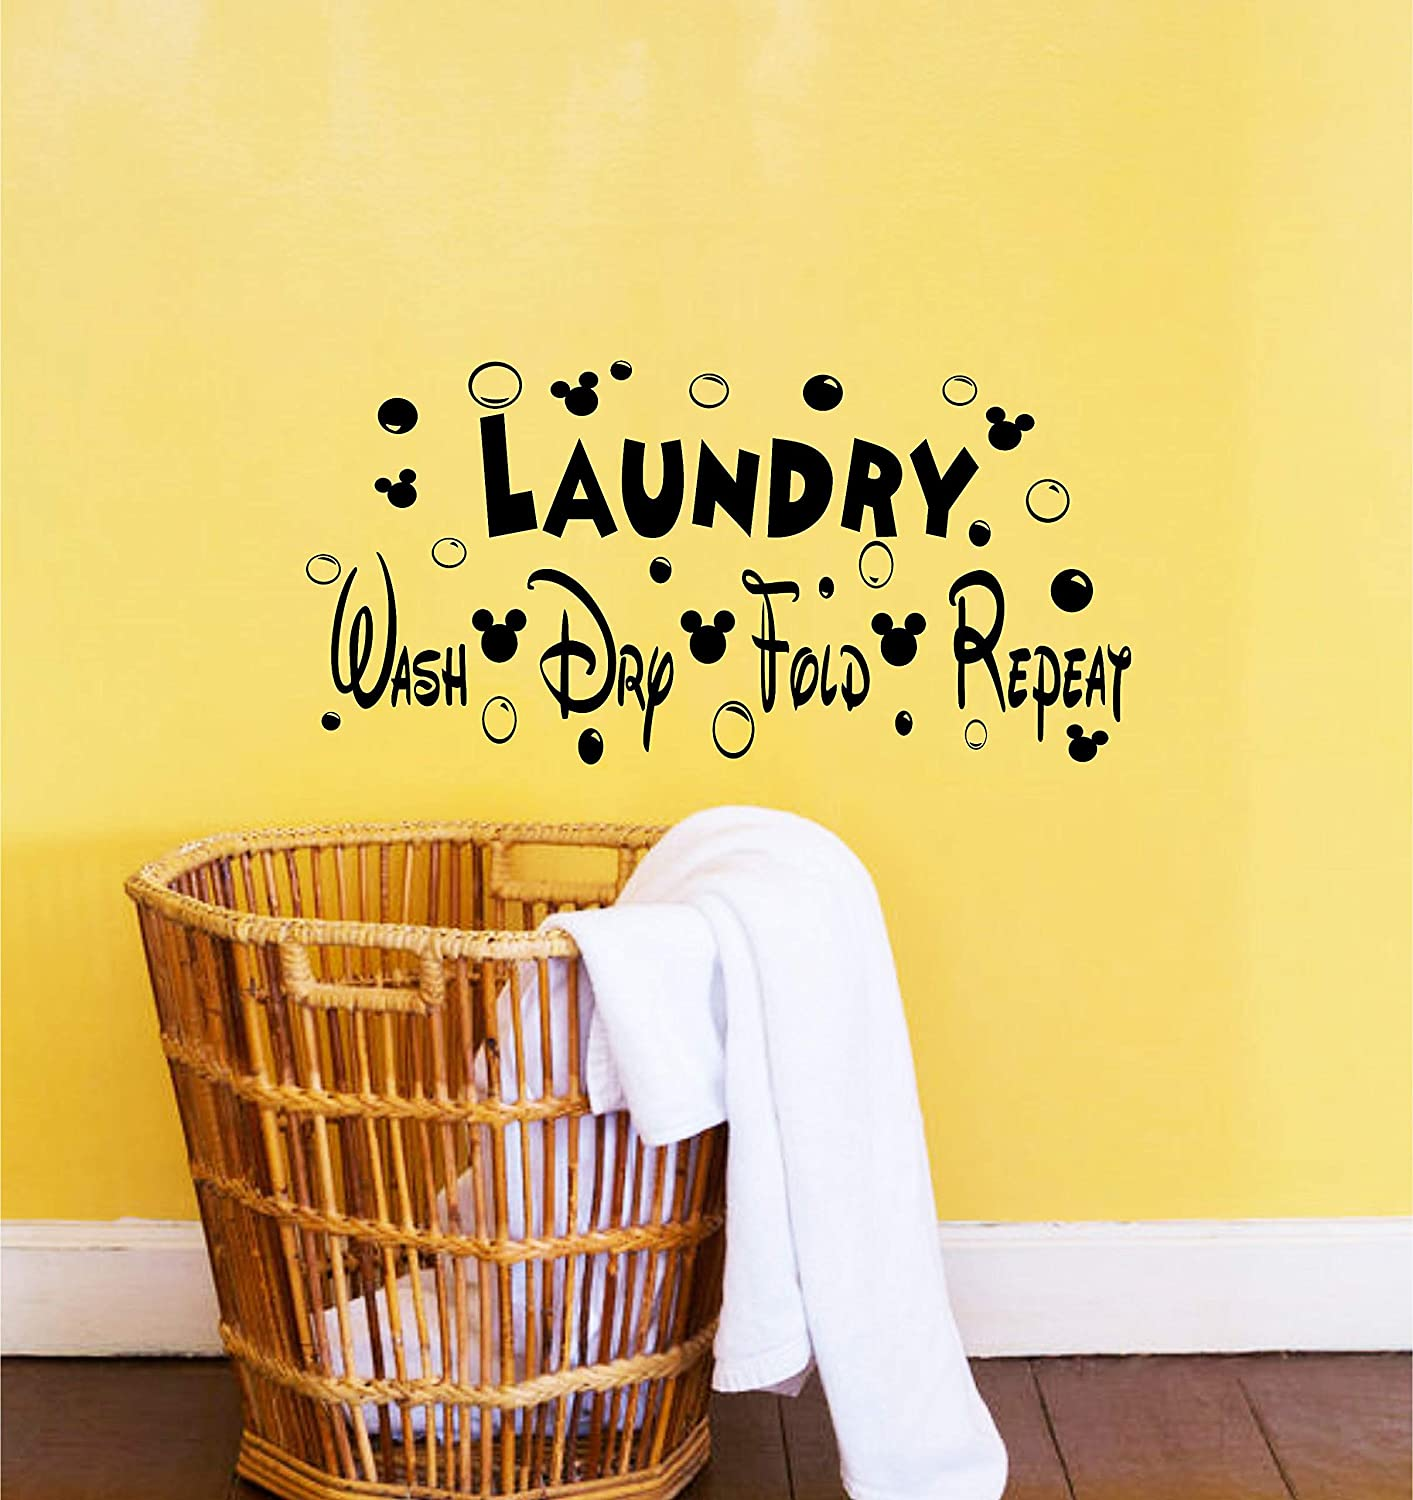 Best Design Amazing Disney Decor-Disney Decals-Laundry Room Decor-Wash Dry Fold Repeat-Mickey-Laundry Sign-Disney Signs-Disney Wall Quotes-Laundry Room Decals Made in USA!